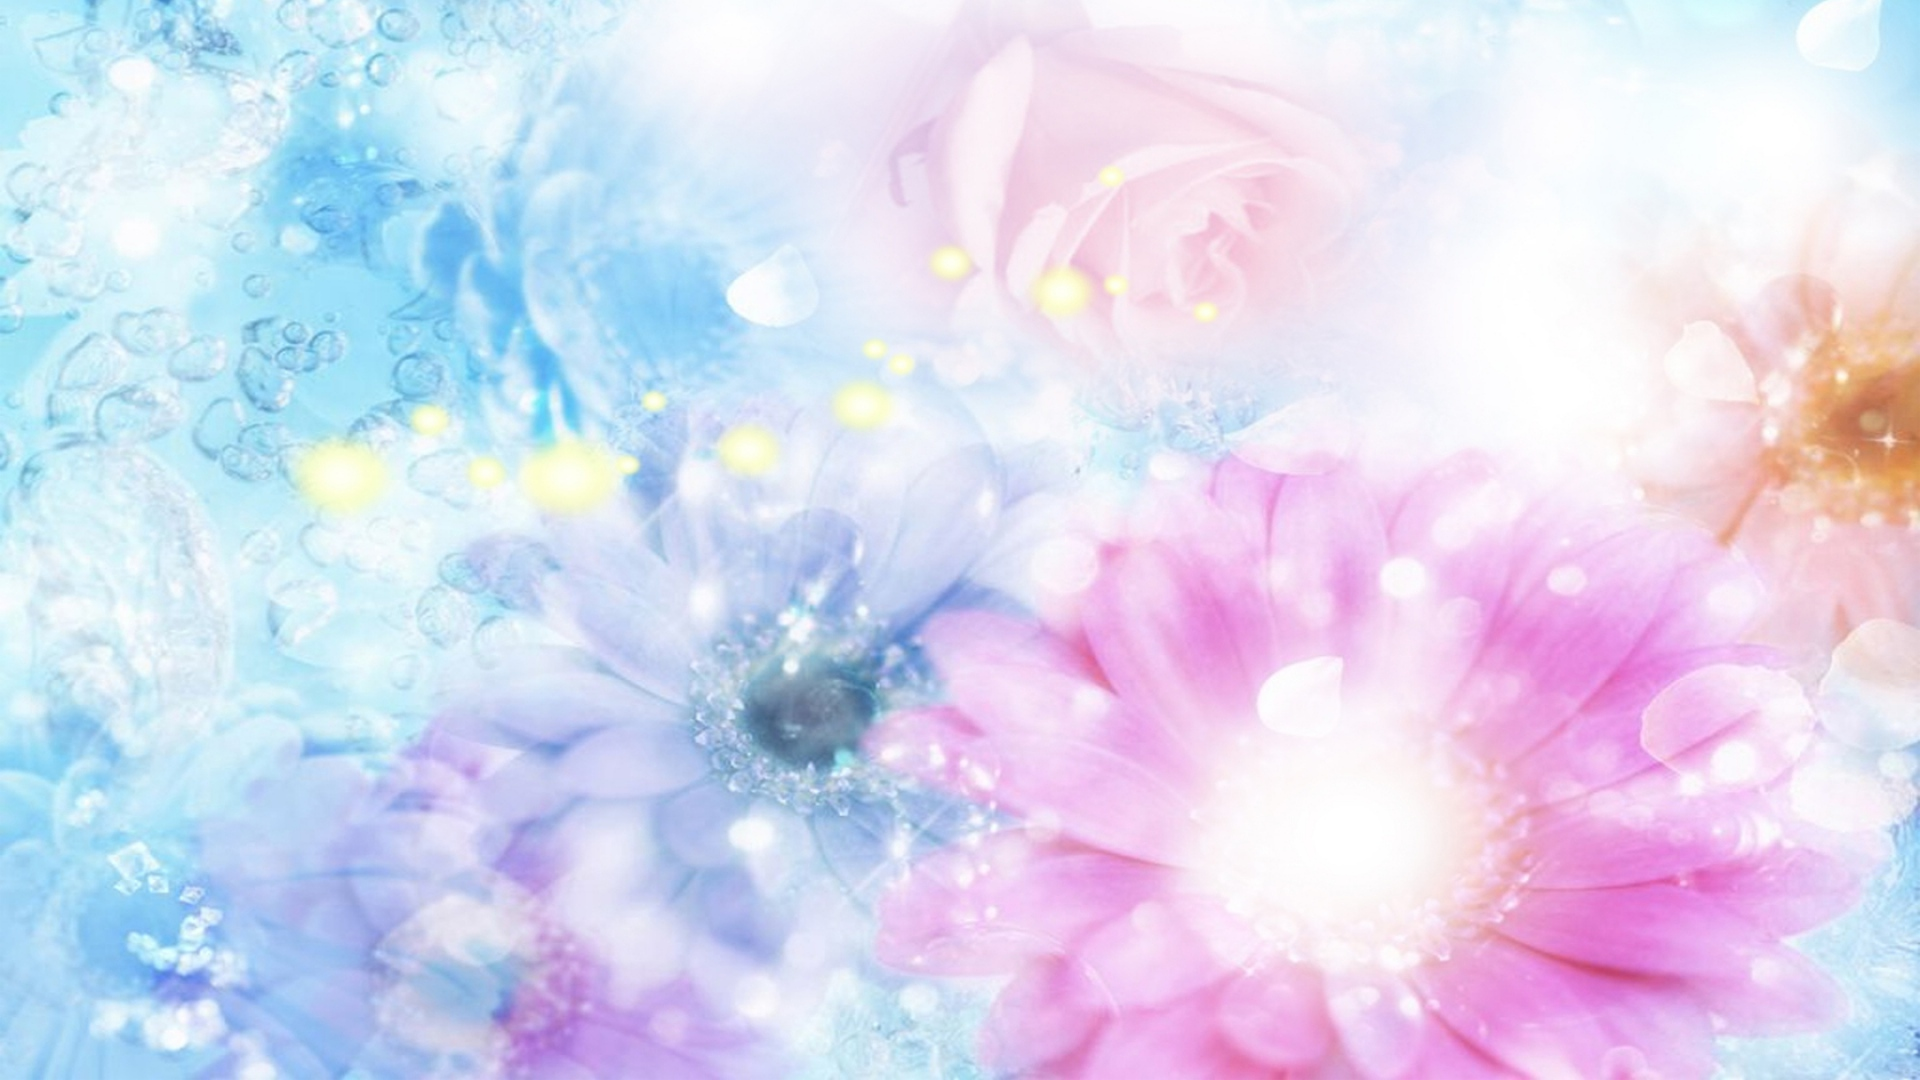 Download Wallpaper 1920x1080 Pink Blue Flowers Blurred